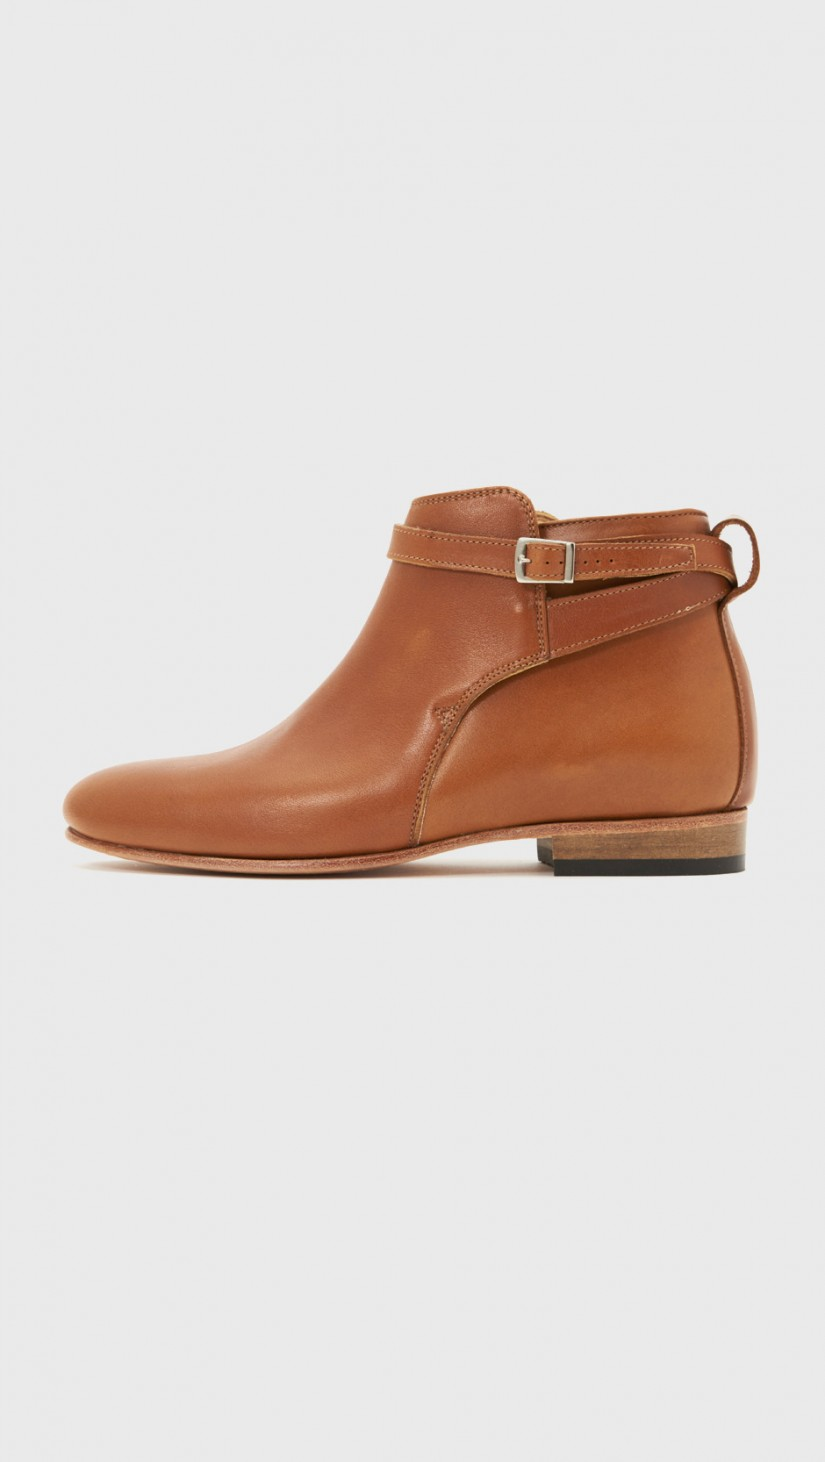 Flat Ankle Boot   Honey whiskey ankle boot with buckled wrap strap.  DIEPPA RESTREPO $415